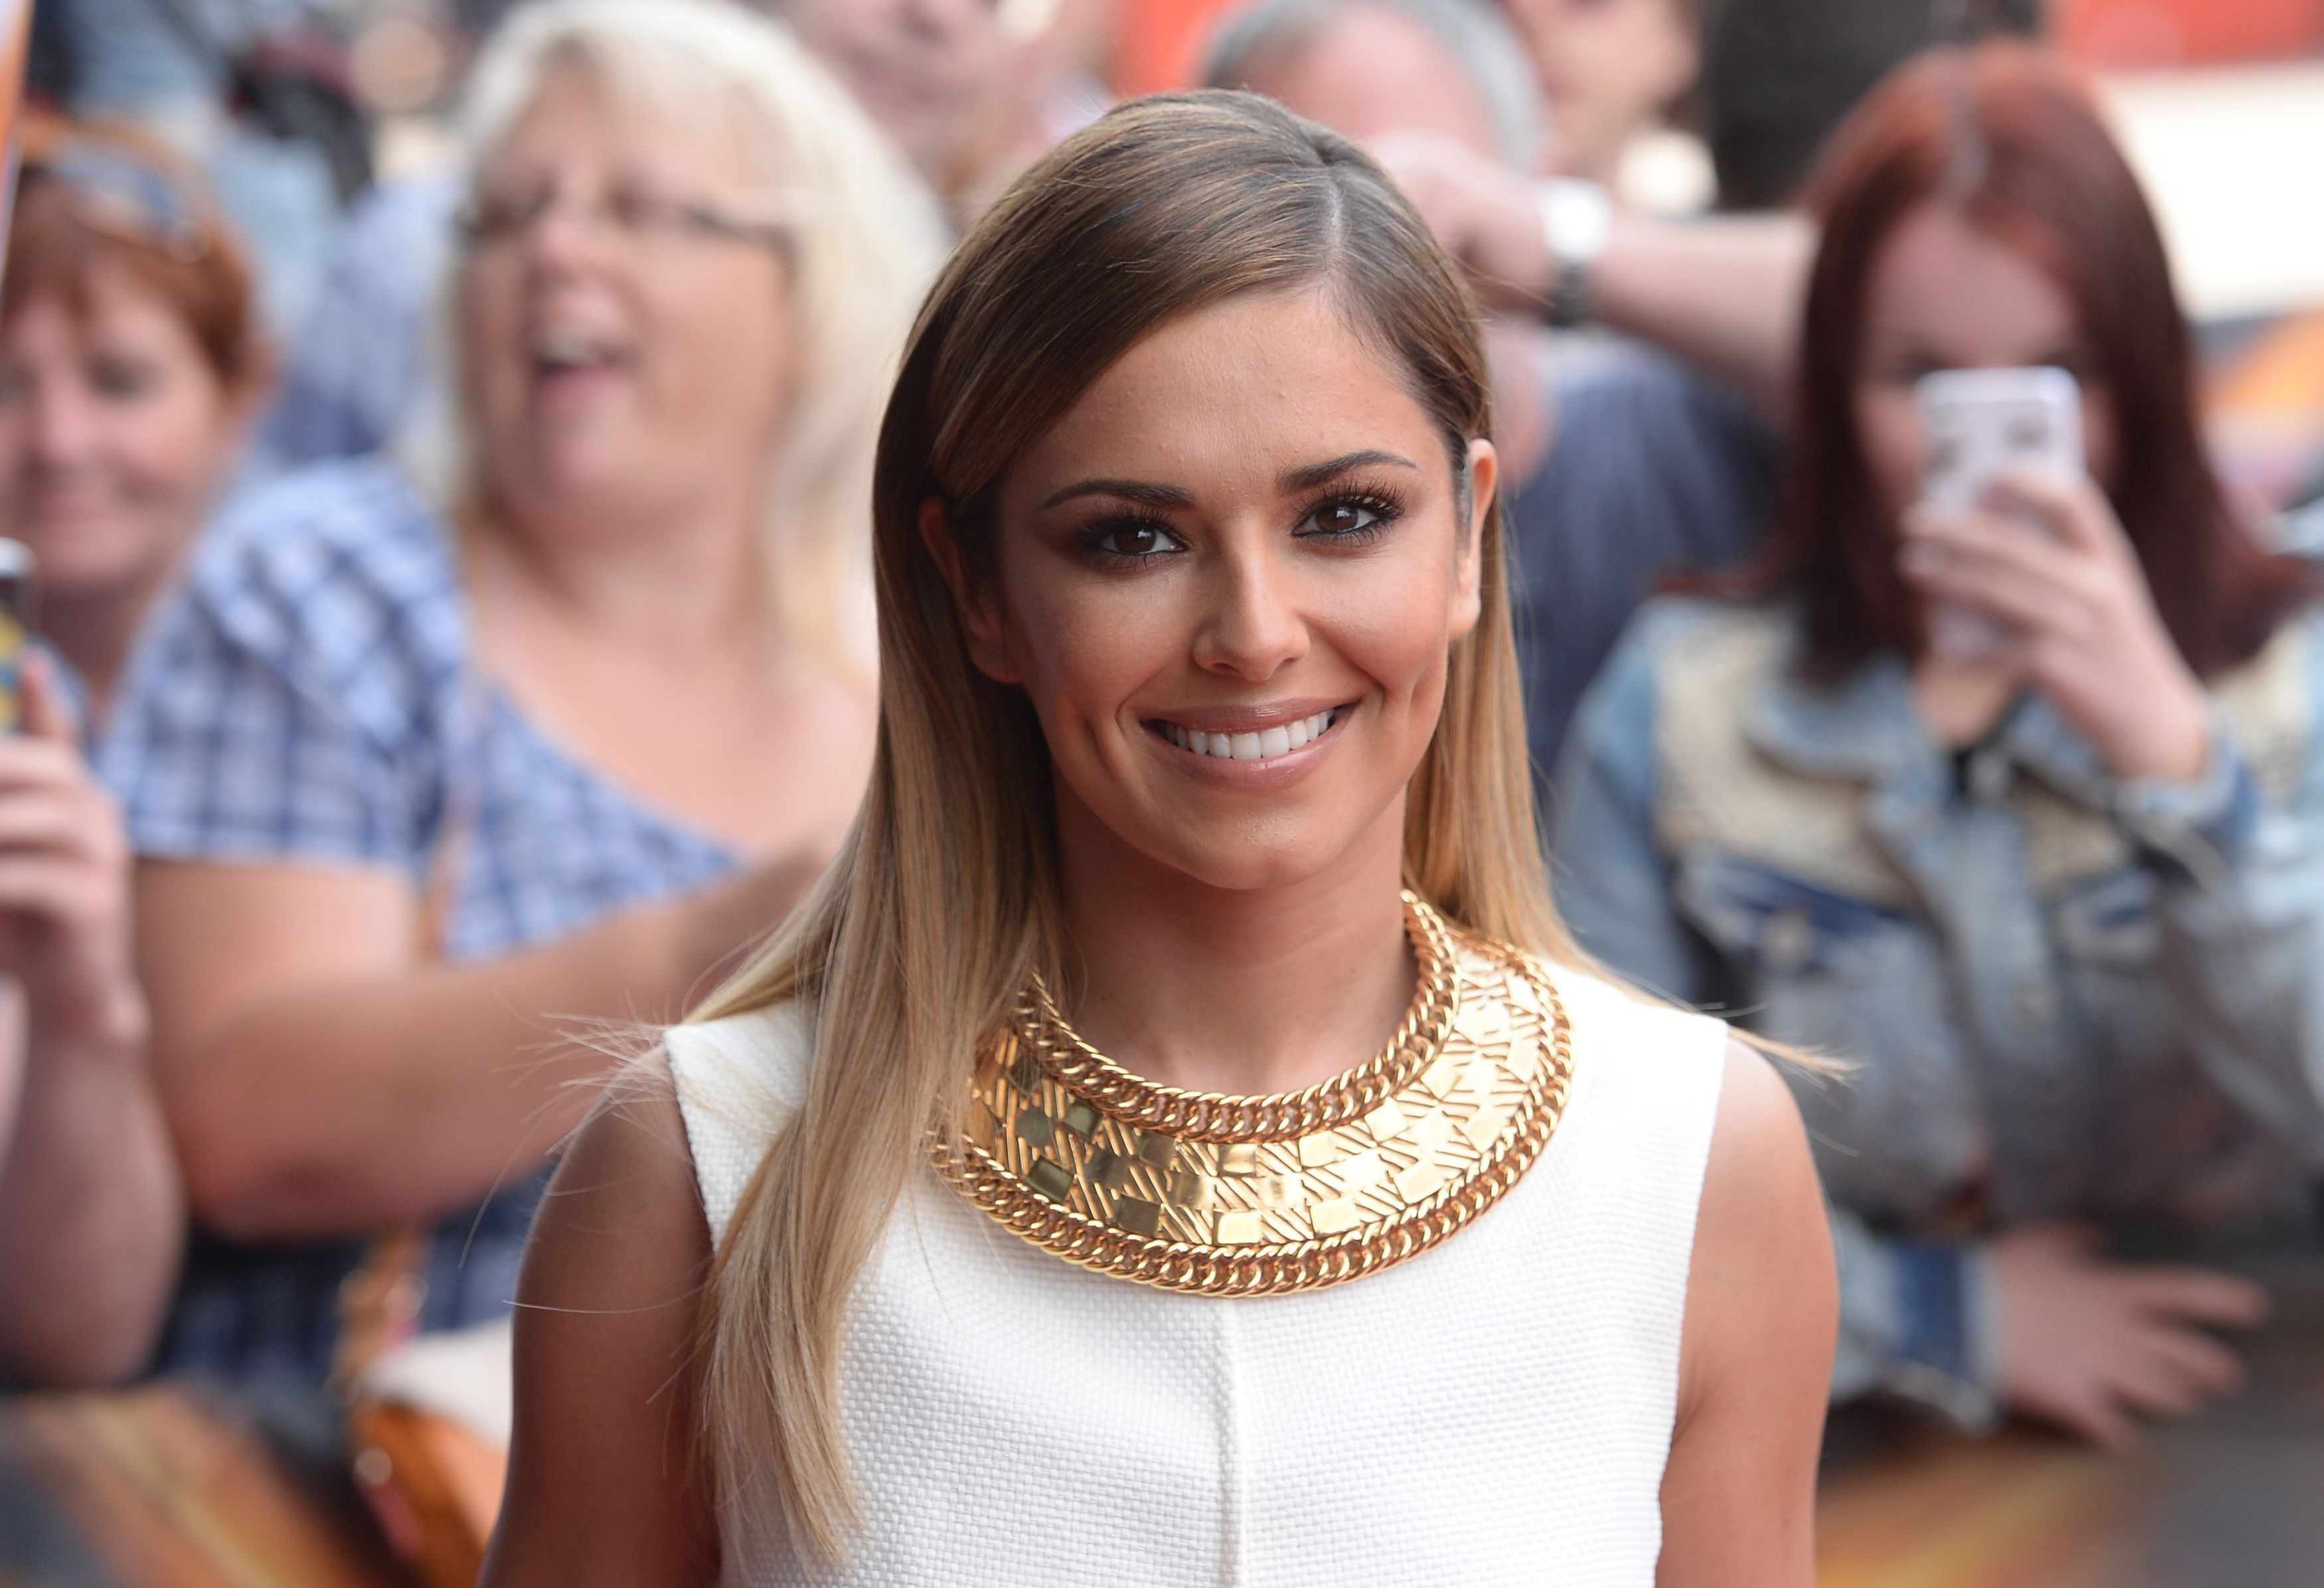 Judge Cheryl Cole arrives at the X Factor auditions, at the Emirates stadium in London.